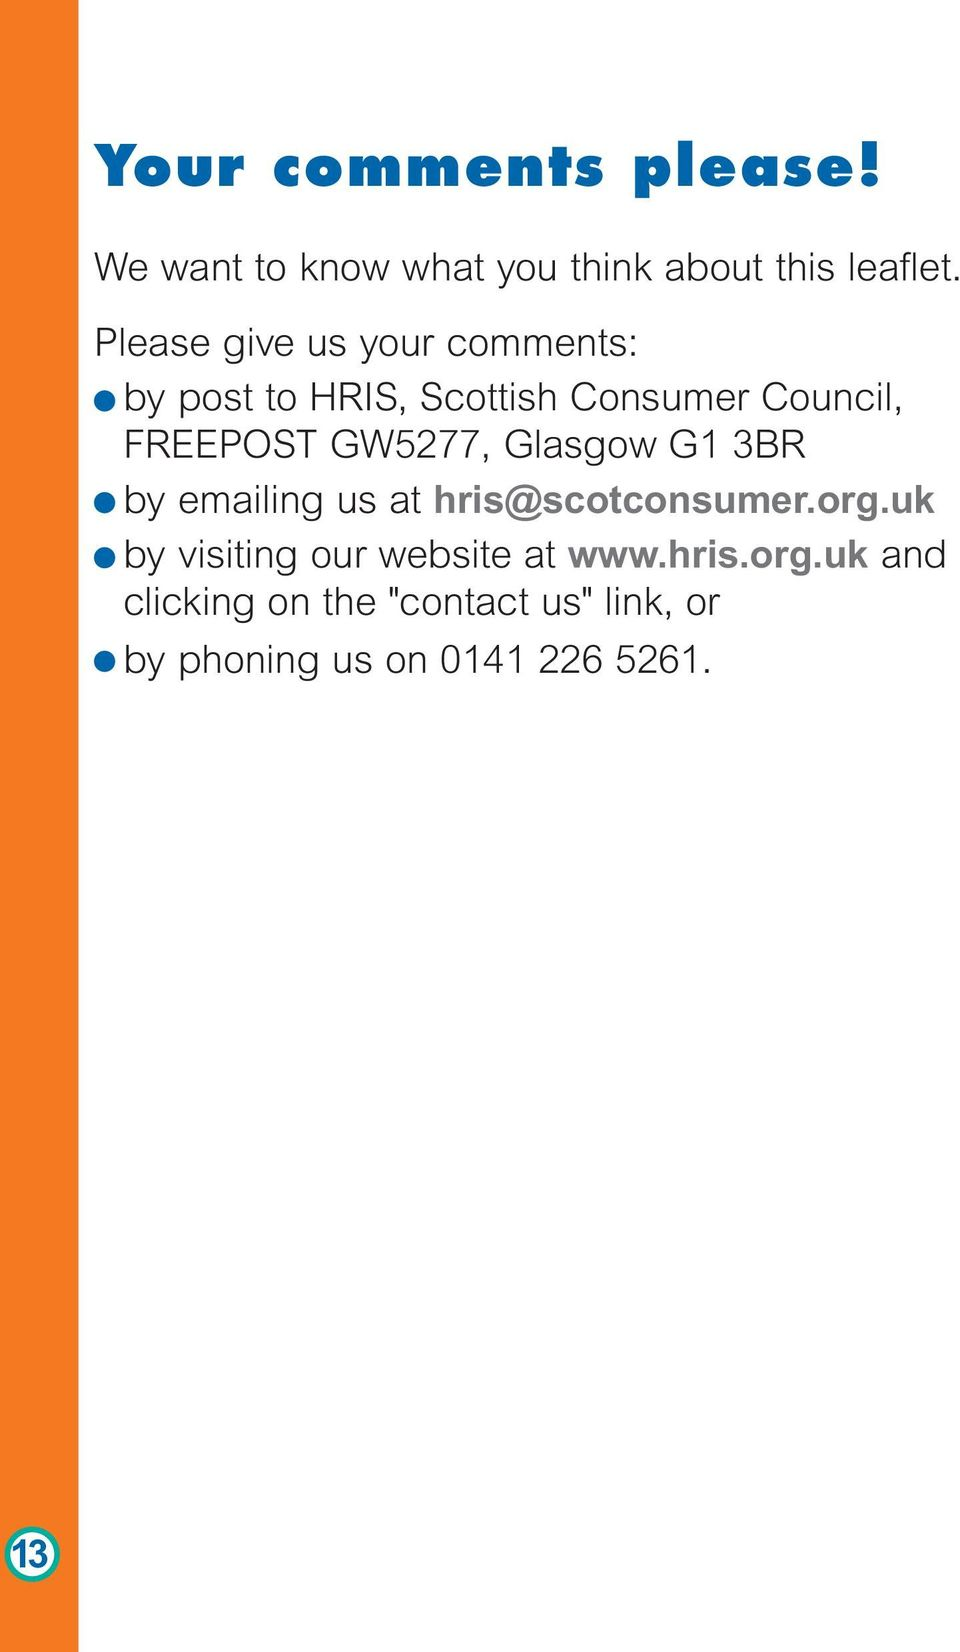 GW5277, Glasgow G1 3BR by emailing us at hris@scotconsumer.org.